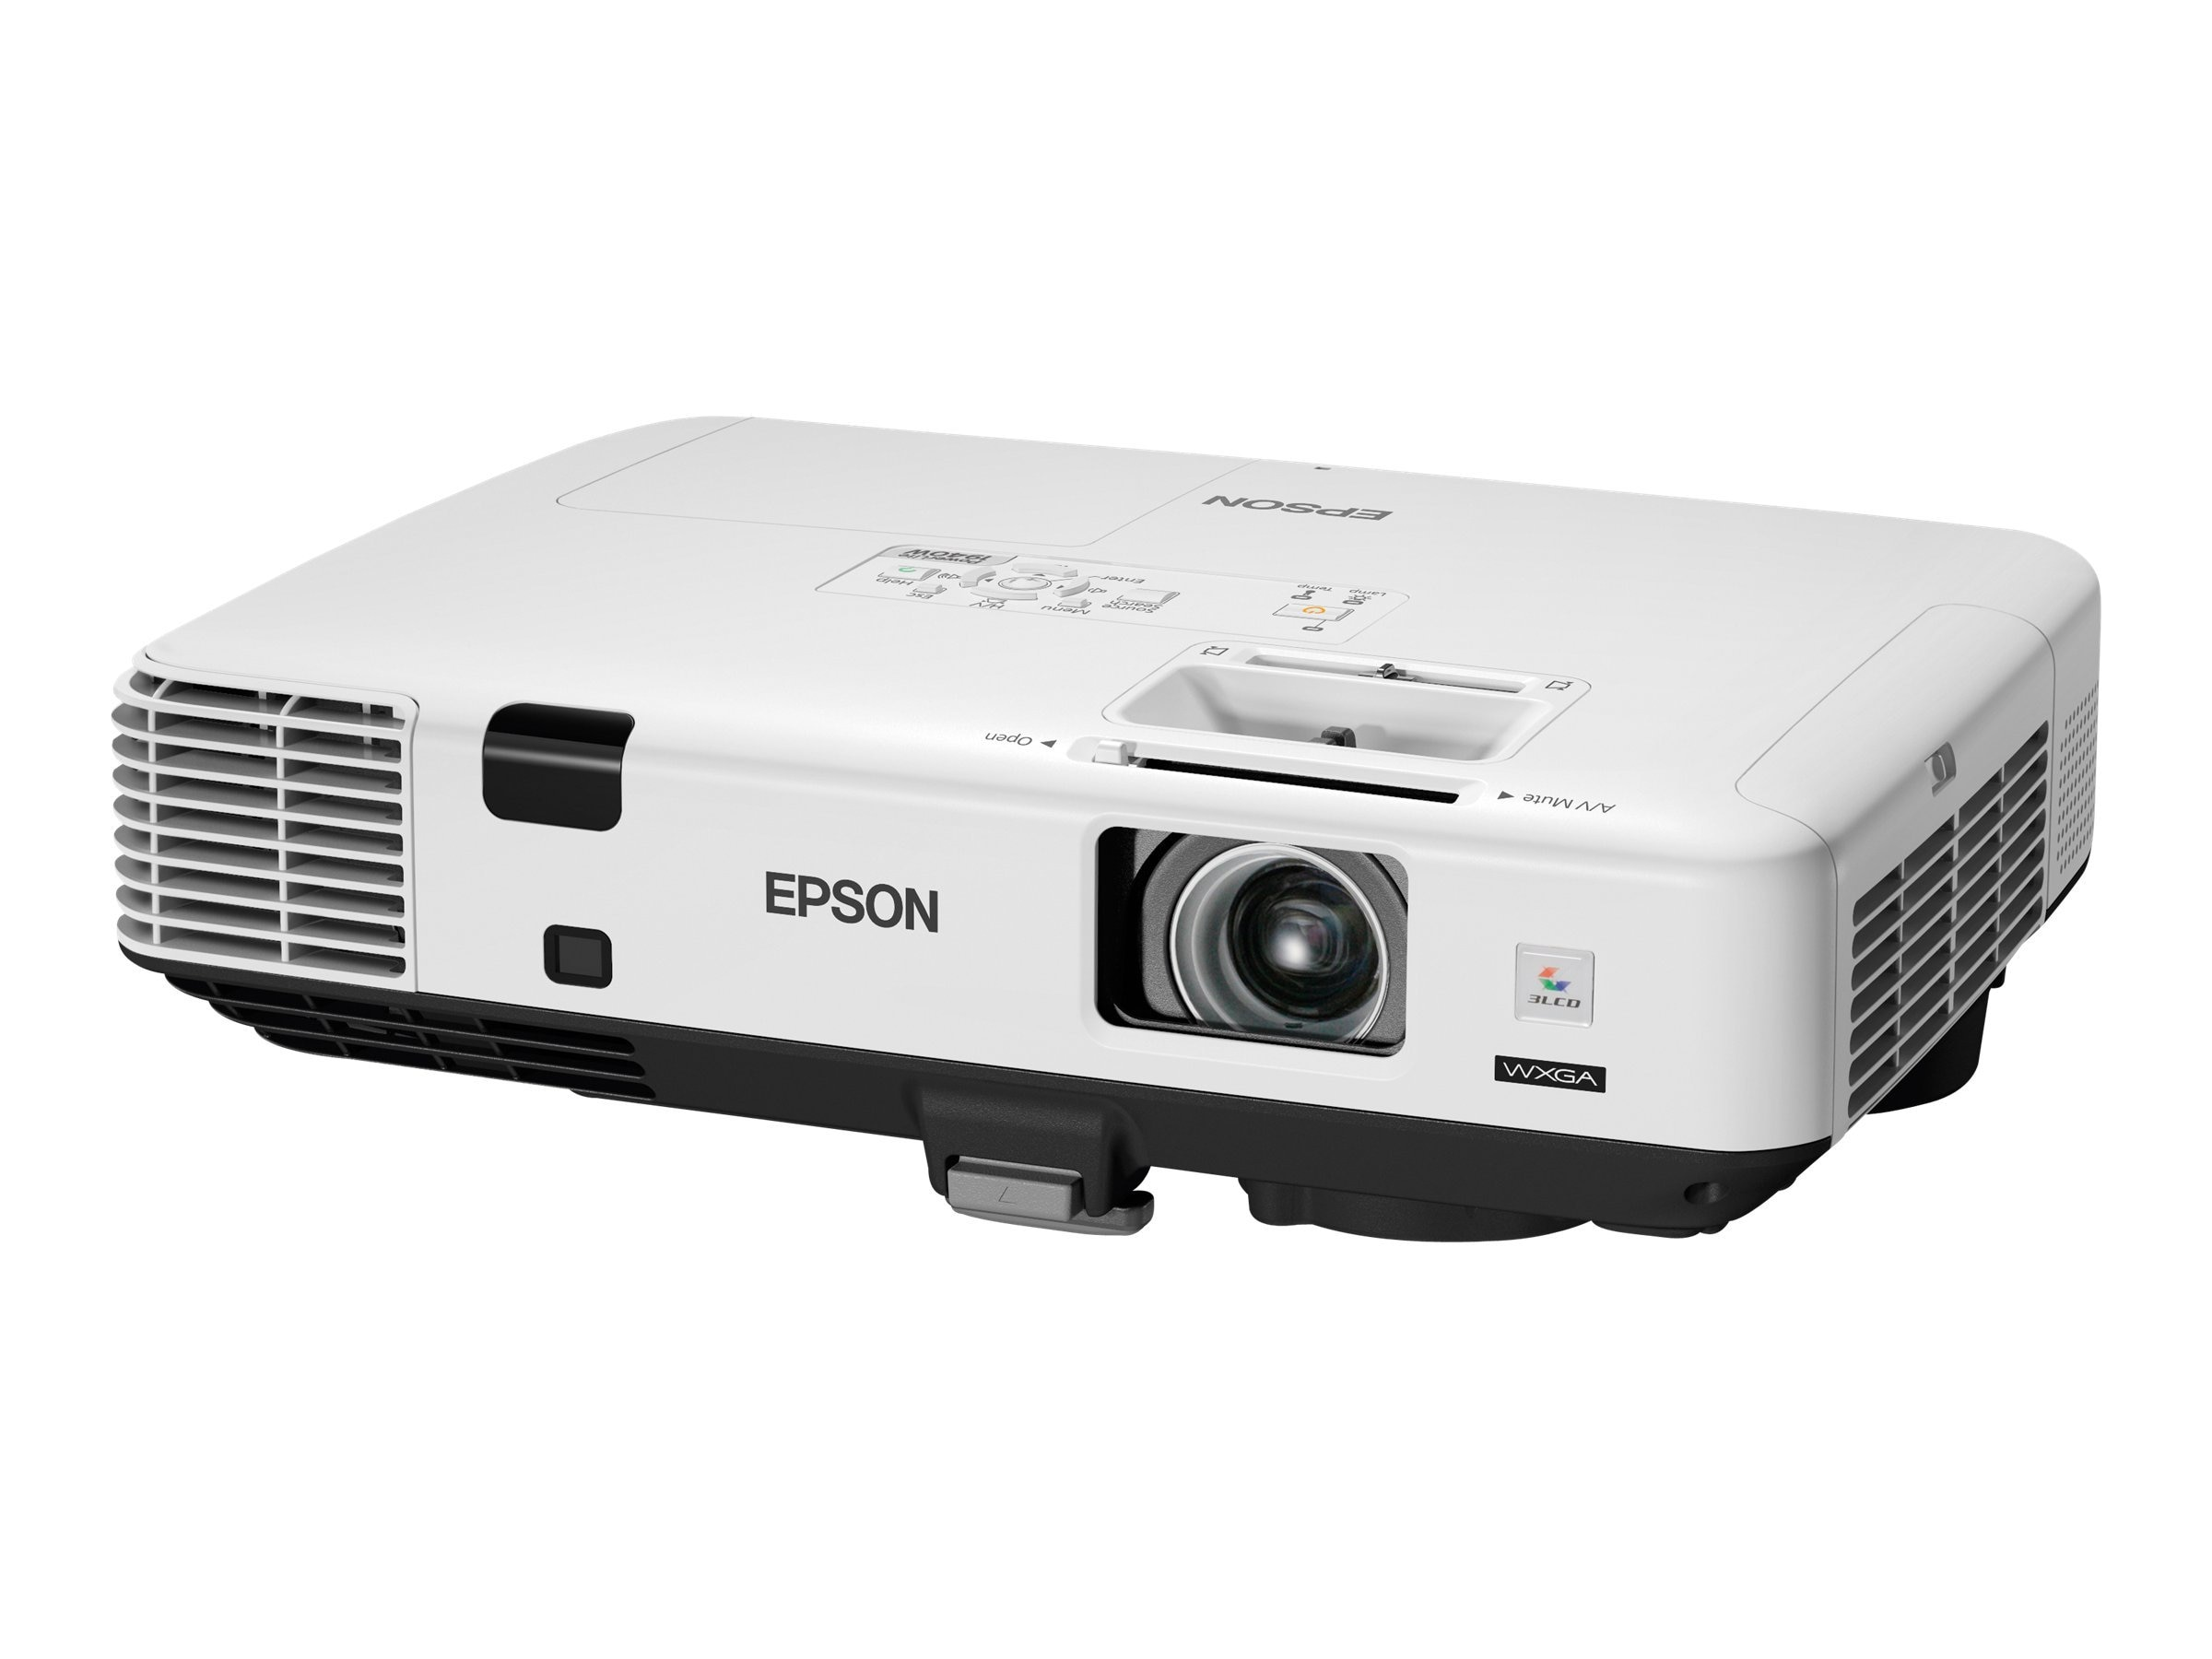 Epson Powerlite 1940W WXGA 3LCD Projector, 4200 Lumens, White, V11H474020, 13881661, Projectors